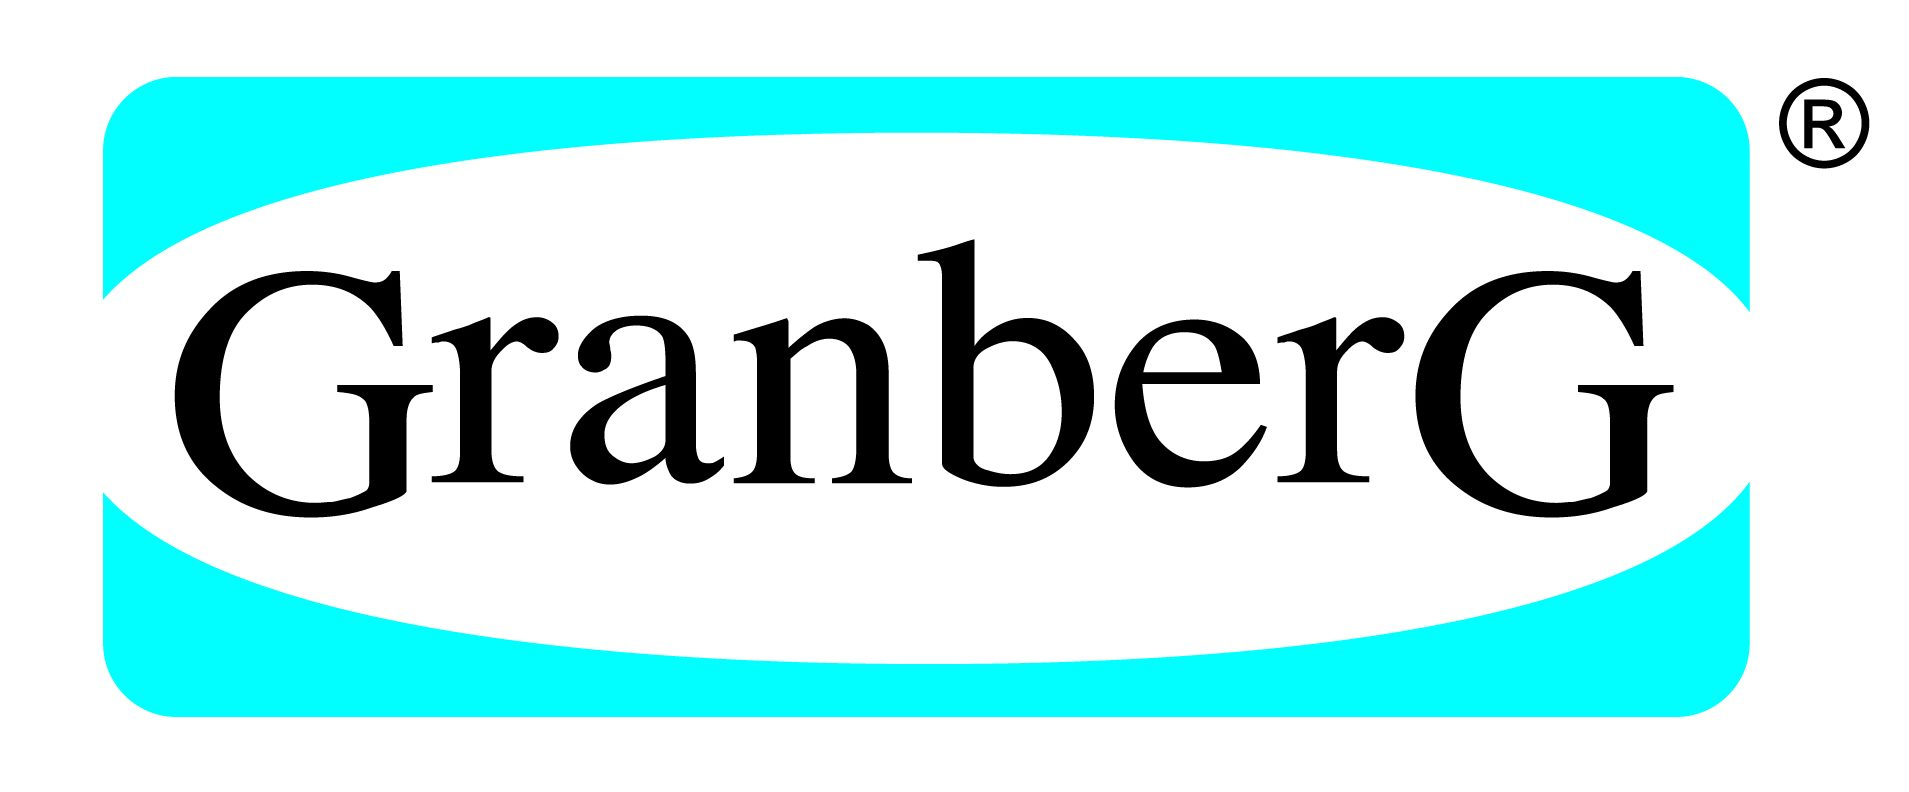 //andrimaglobalsupplies.apps-1and1.net/wp-content/uploads/2018/02/Granberg-logo-slogan-CENTERED-e1517923039755.jpg